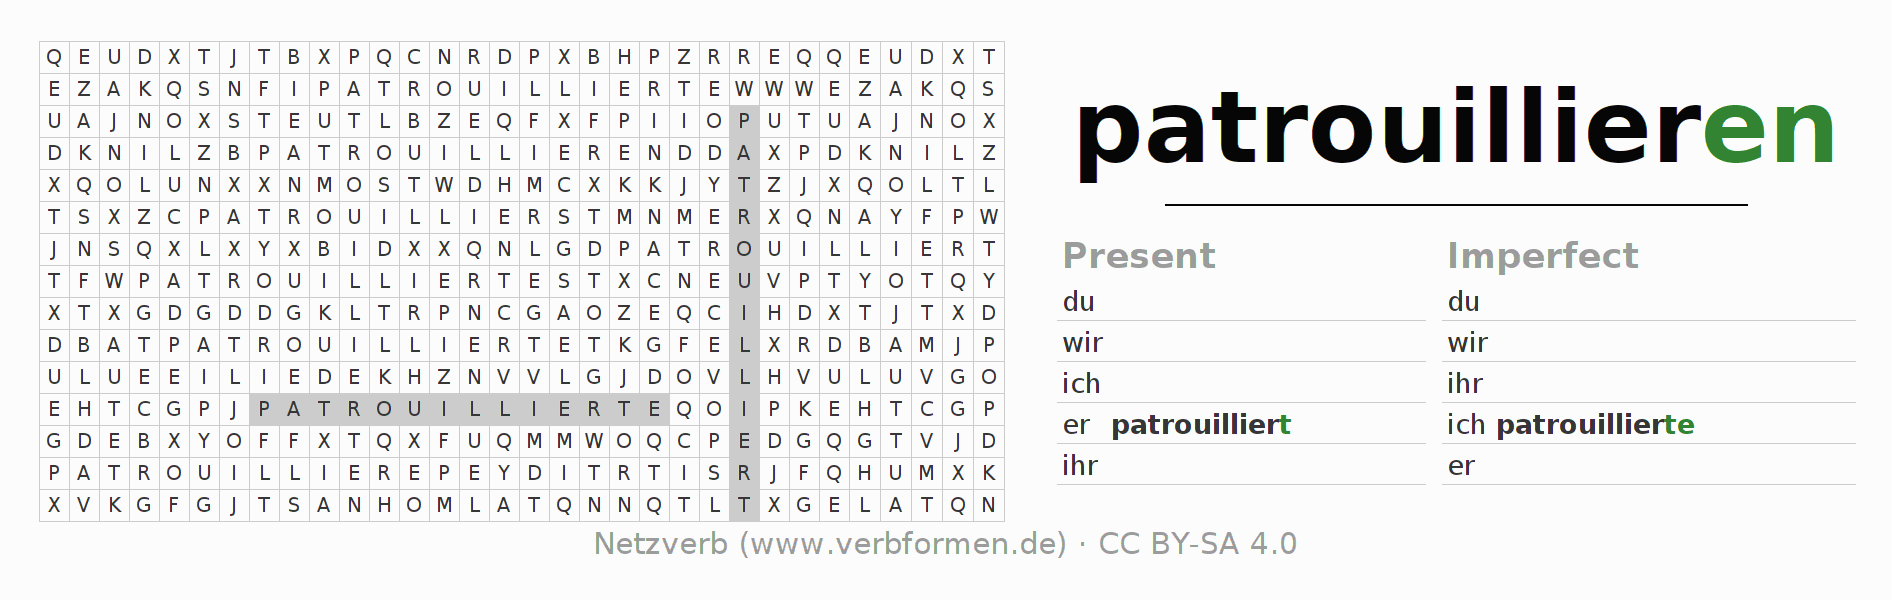 Word search puzzle for the conjugation of the verb patrouillieren (hat)